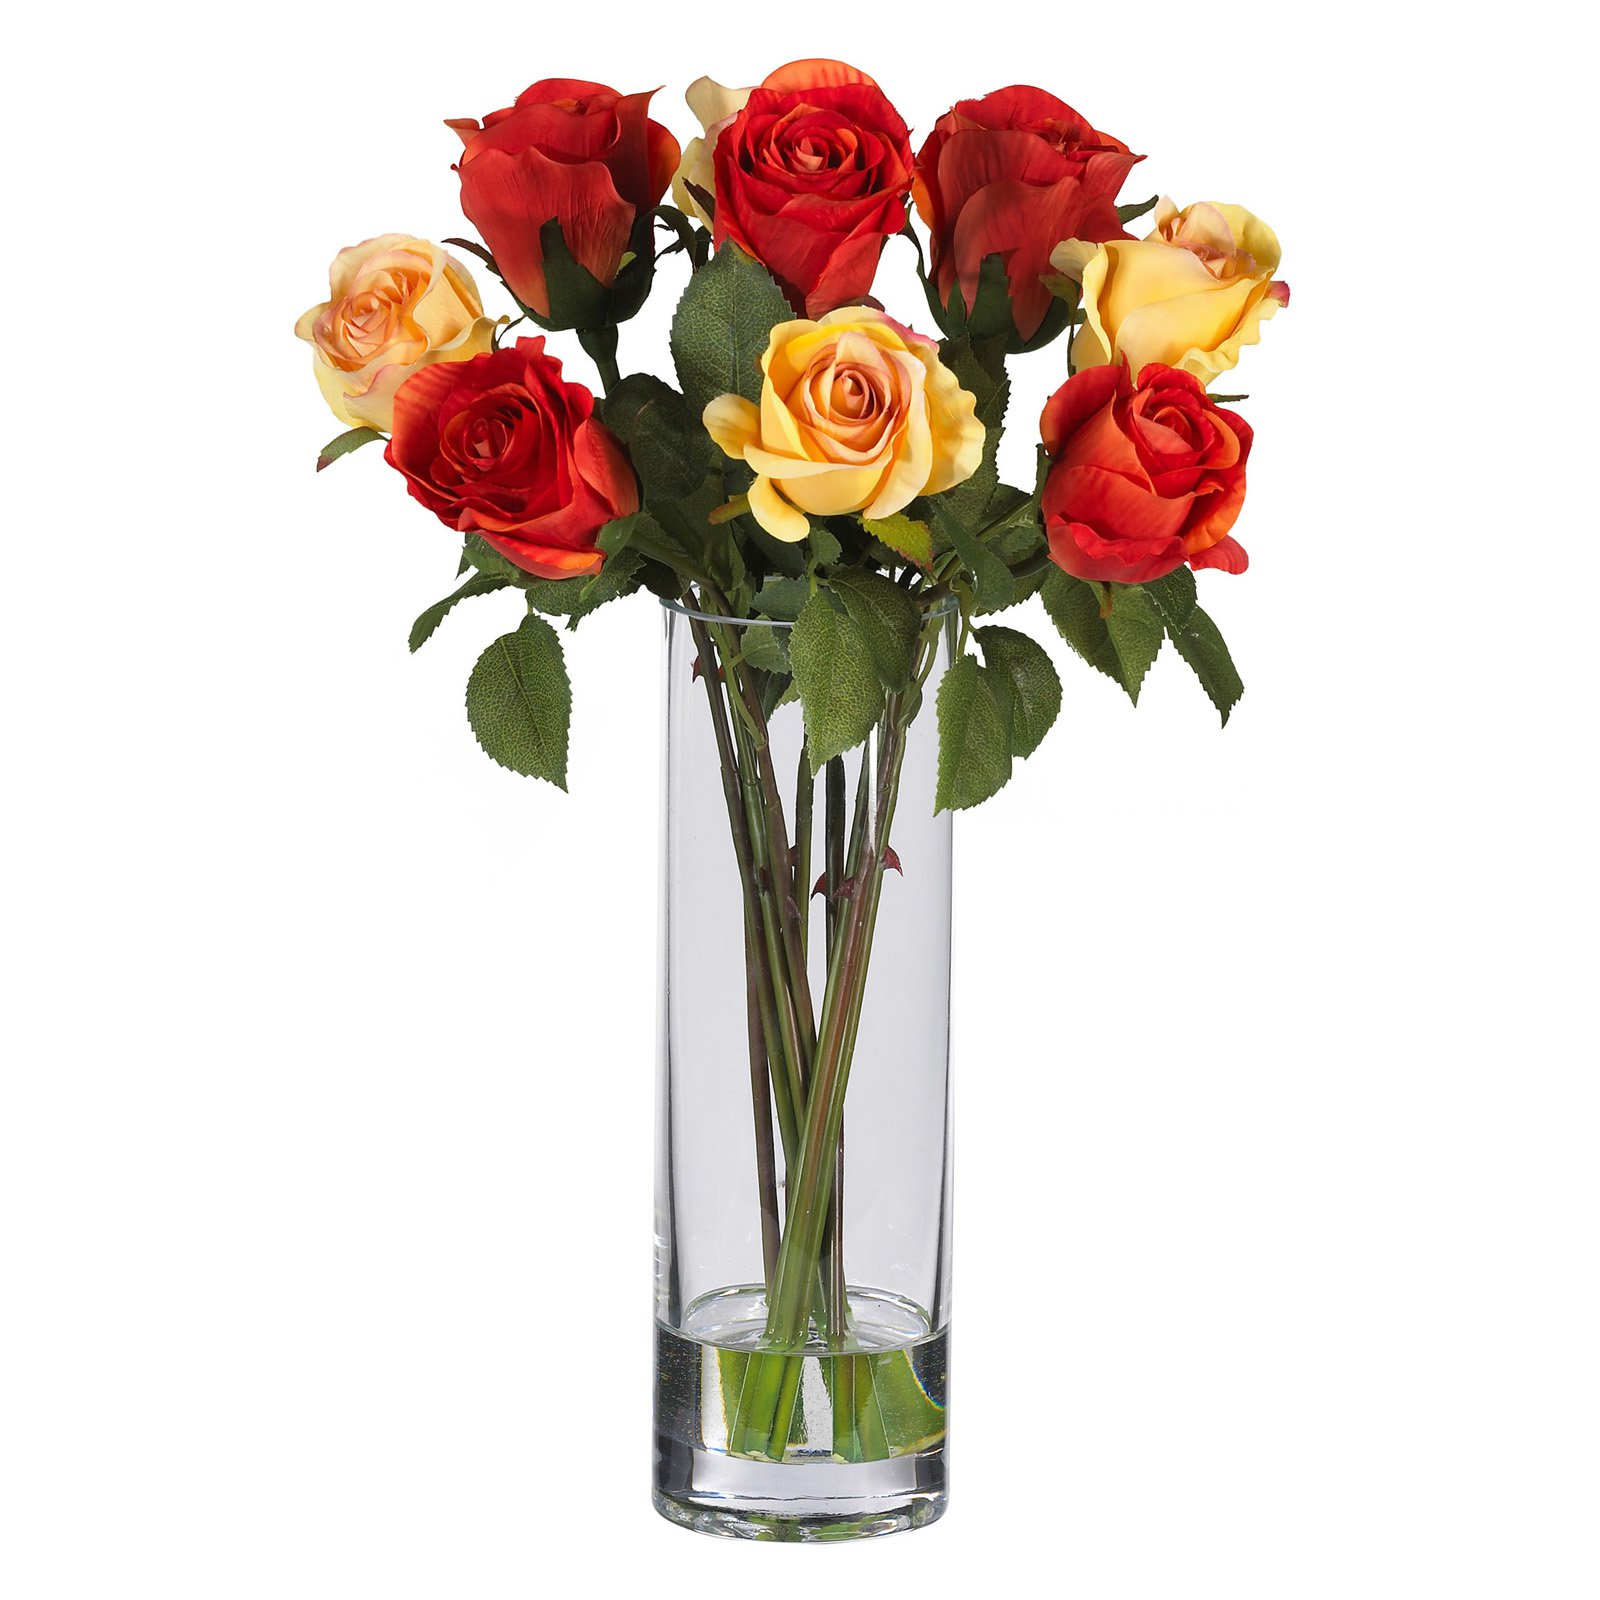 225 & Nearly Natural Roses with Glass Vase Silk Flower Arrangement